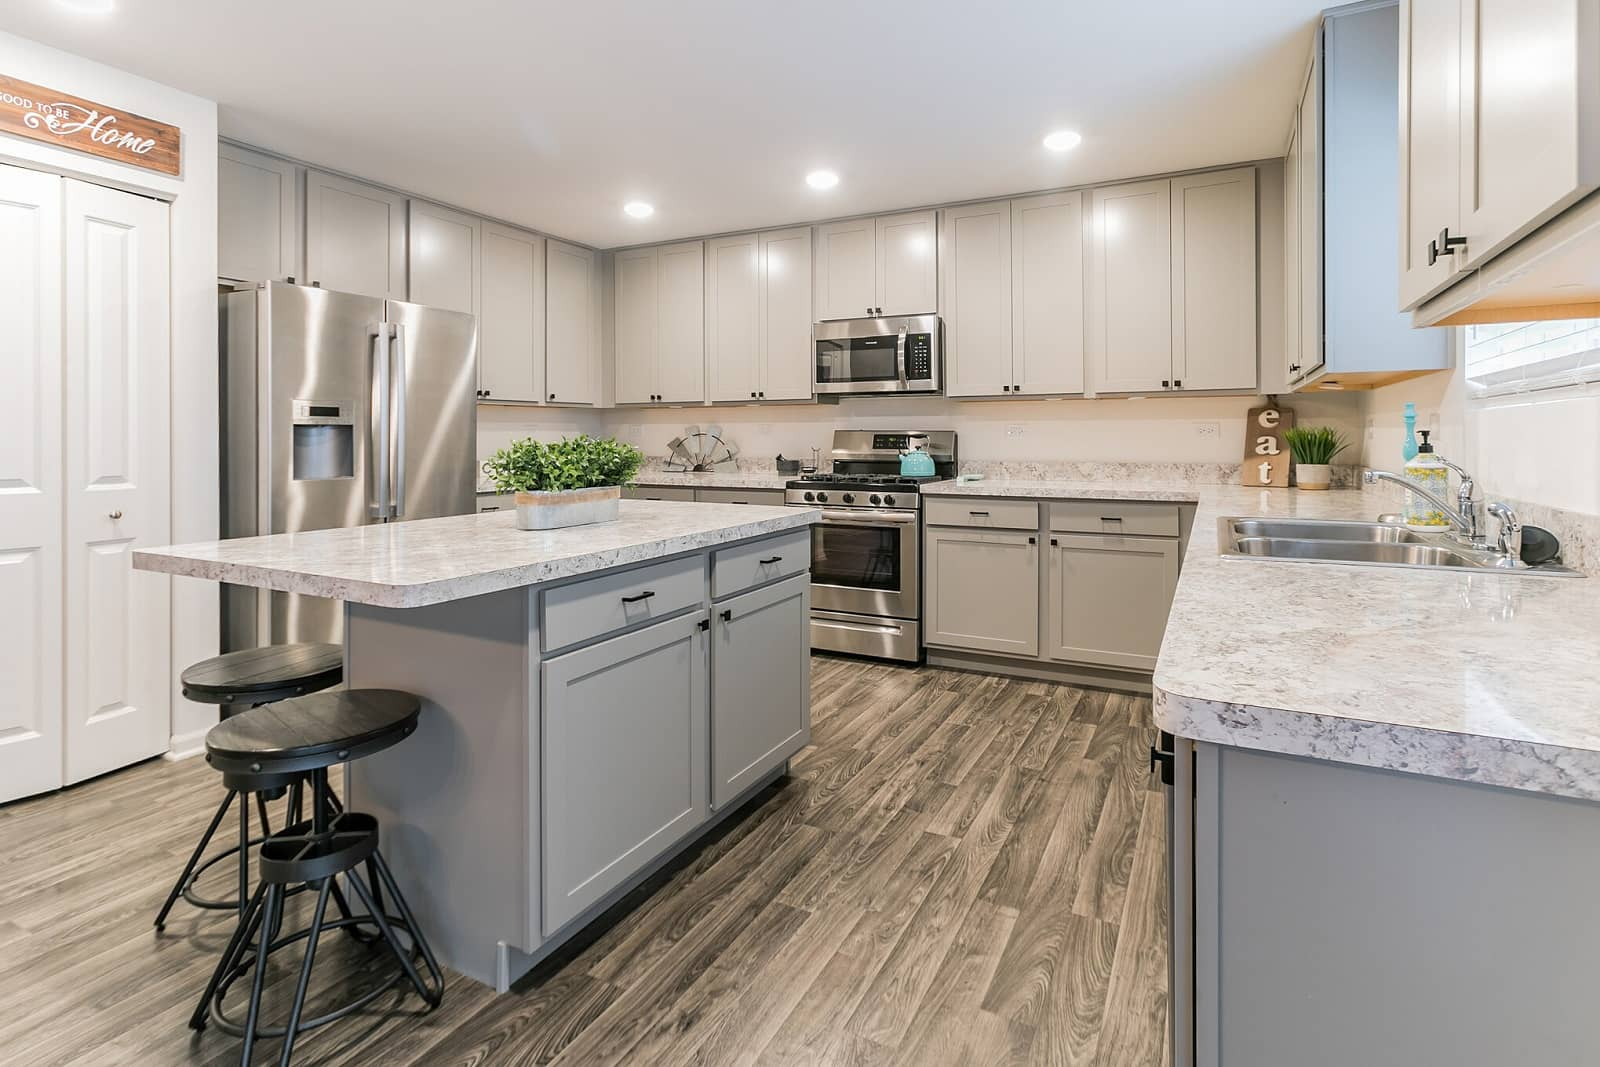 Real Estate Photography in Joliet - IL - USA - Kitchen View